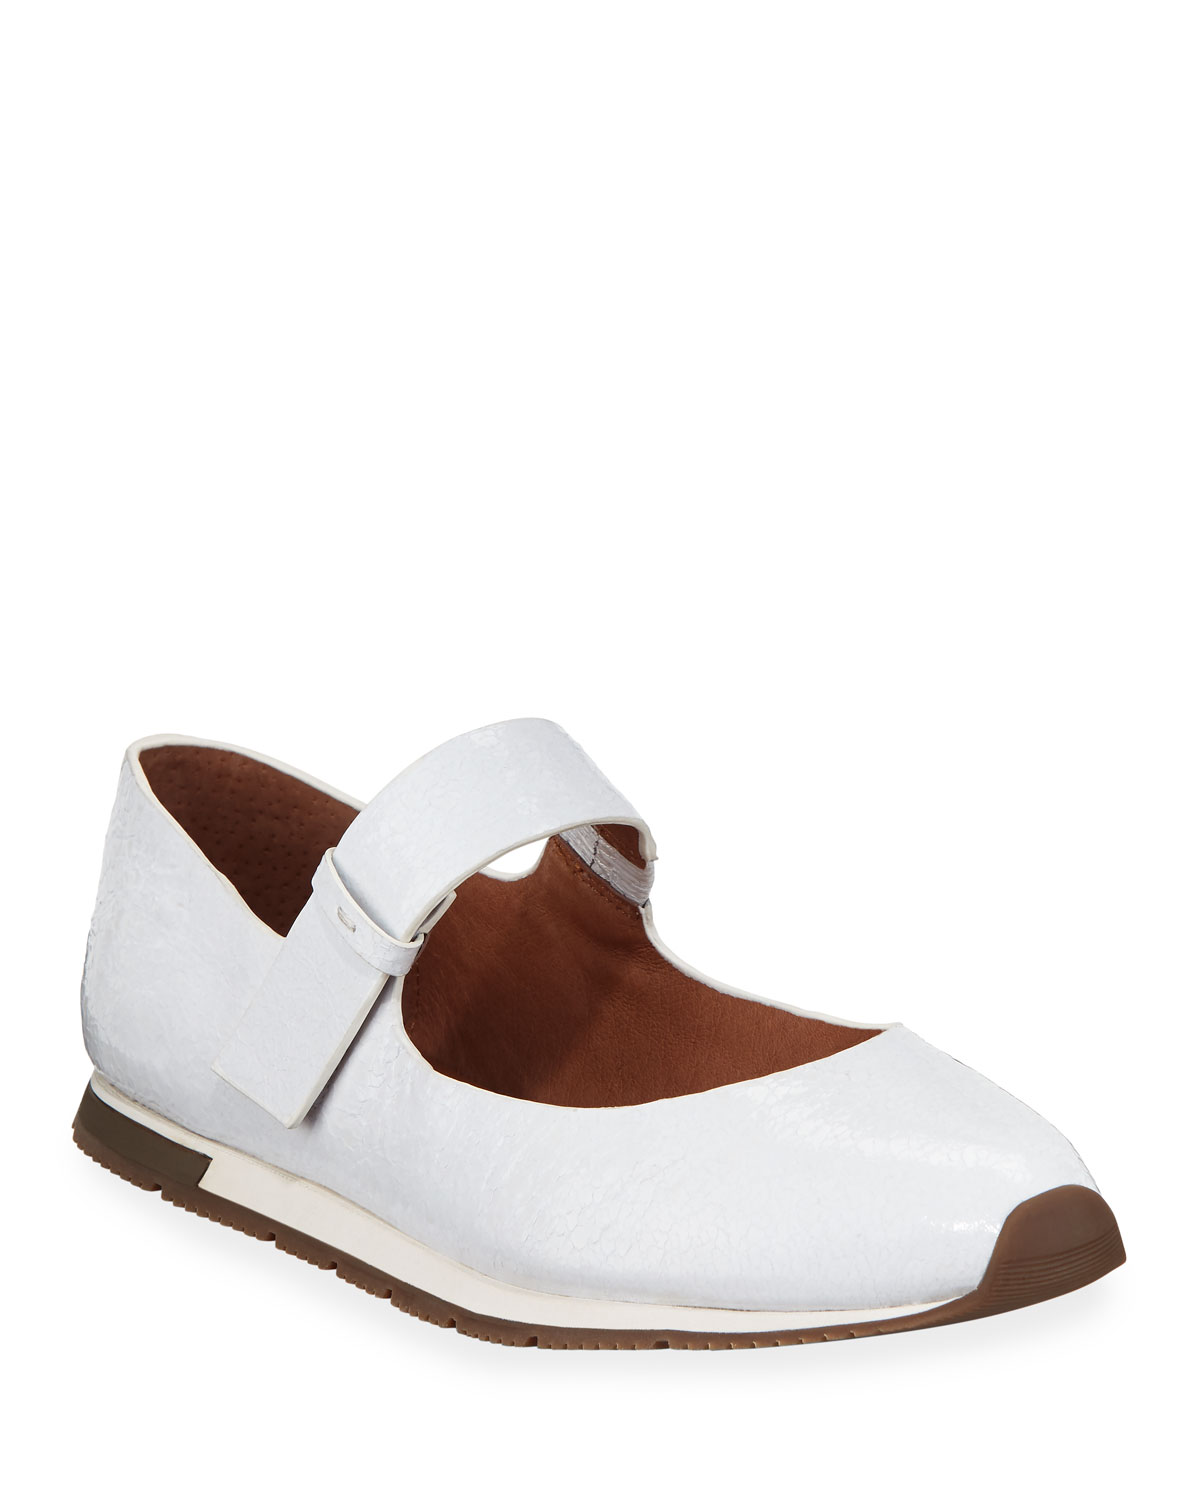 2922378ad Gentle Souls Luca Leather Mary Jane Sneakers